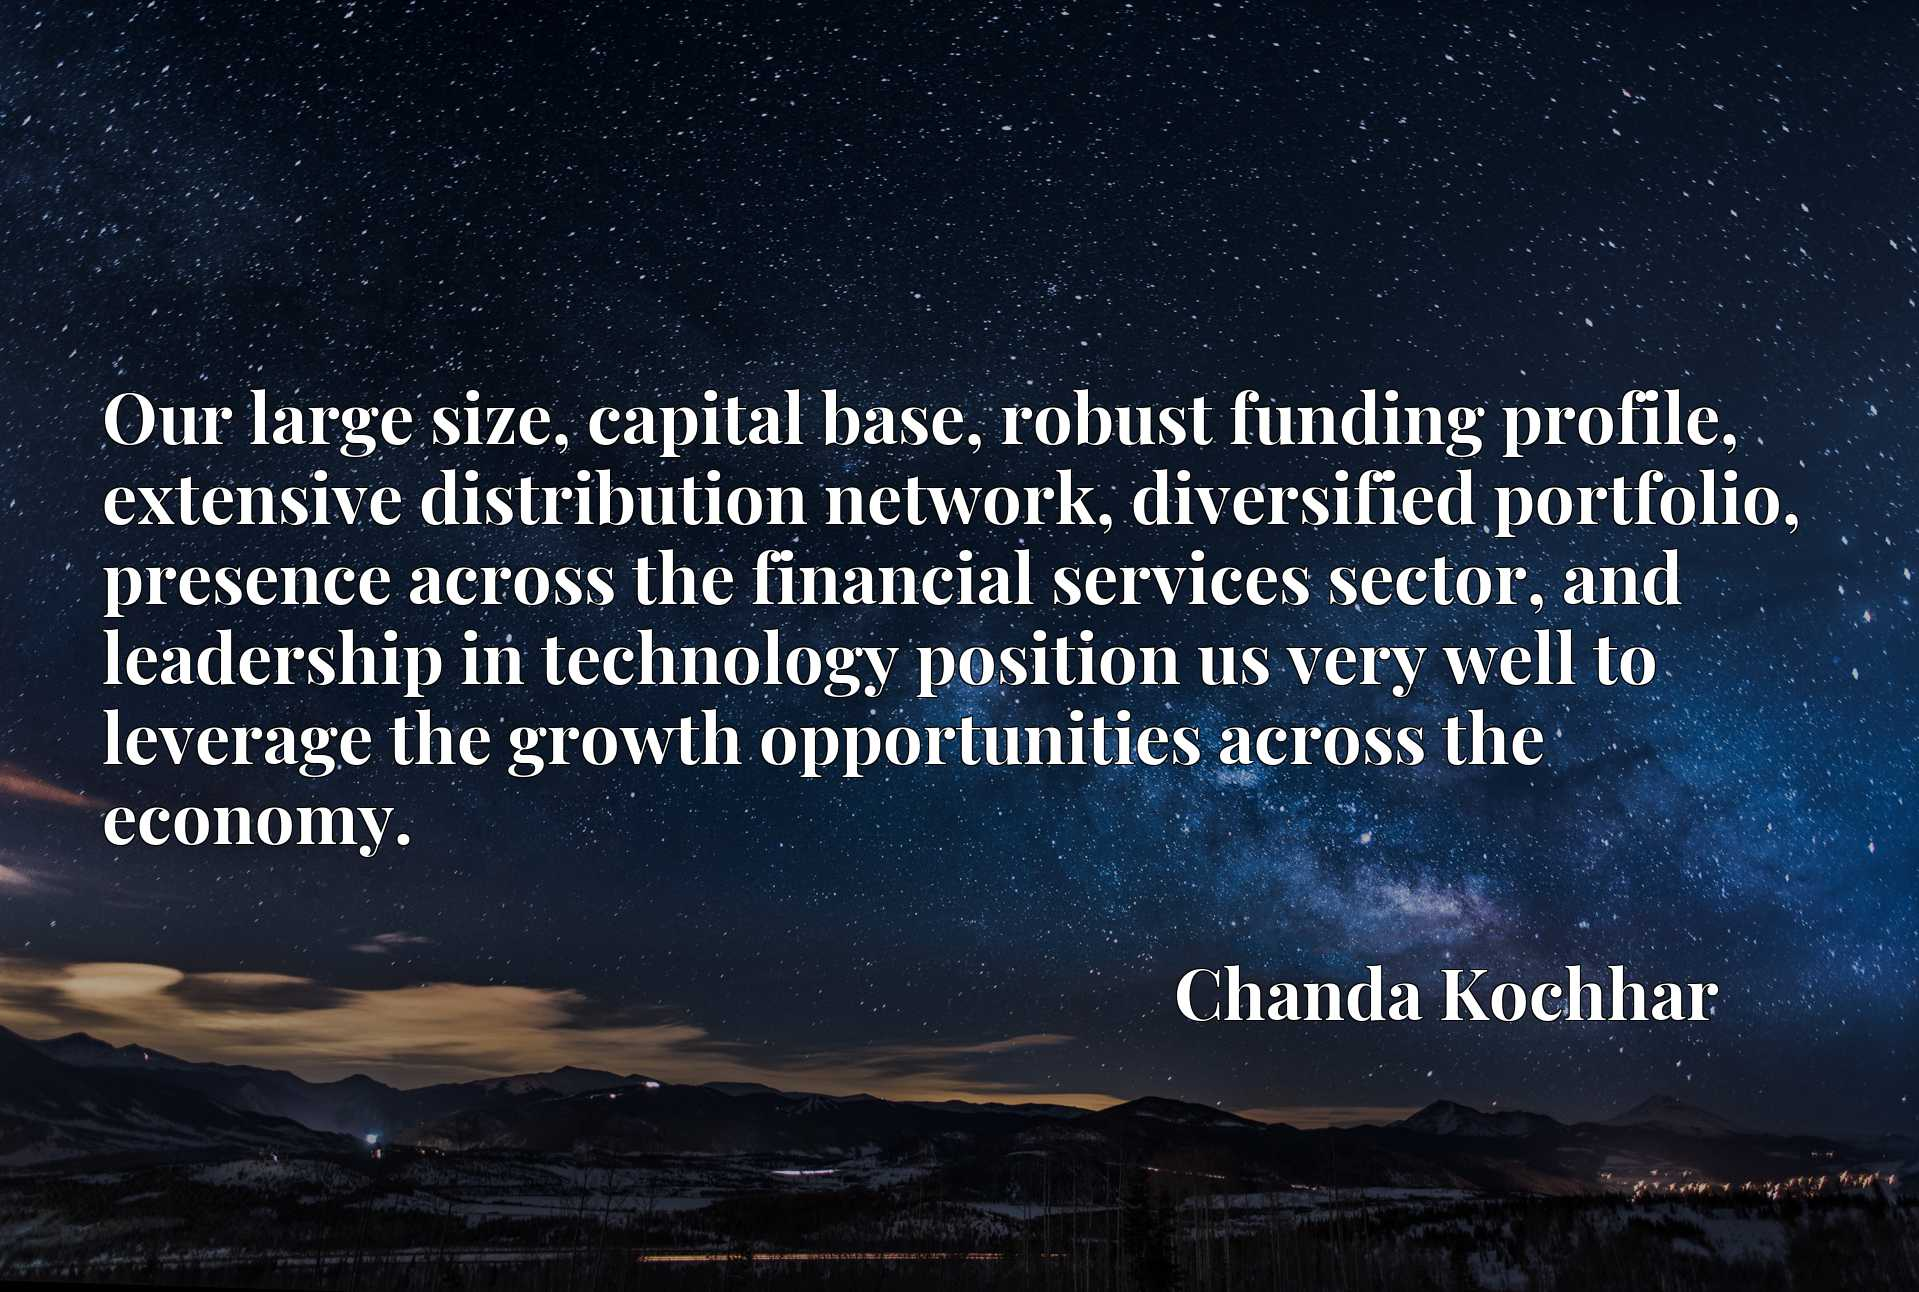 Quote Picture :Our large size, capital base, robust funding profile, extensive distribution network, diversified portfolio, presence across the financial services sector, and leadership in technology position us very well to leverage the growth opportunities across the economy.